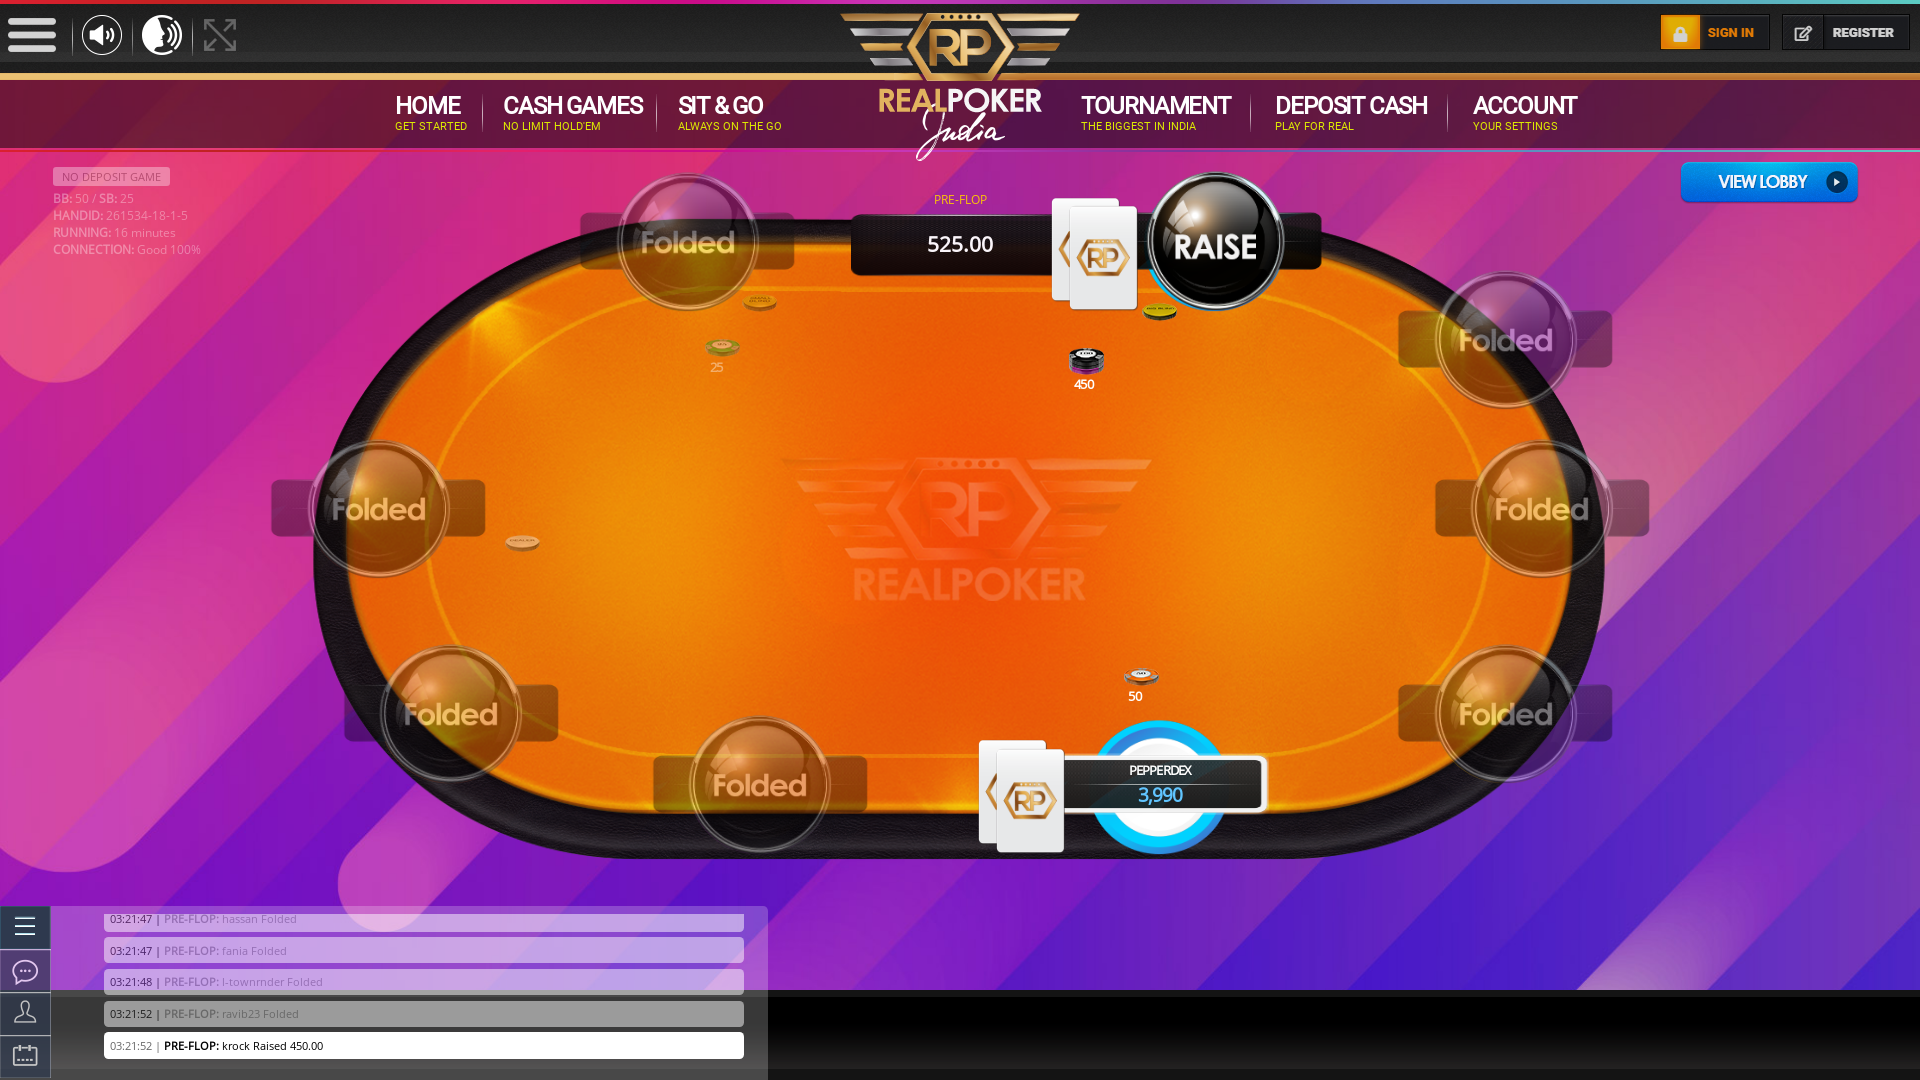 Real poker 10 player table in the 16th minute of the match